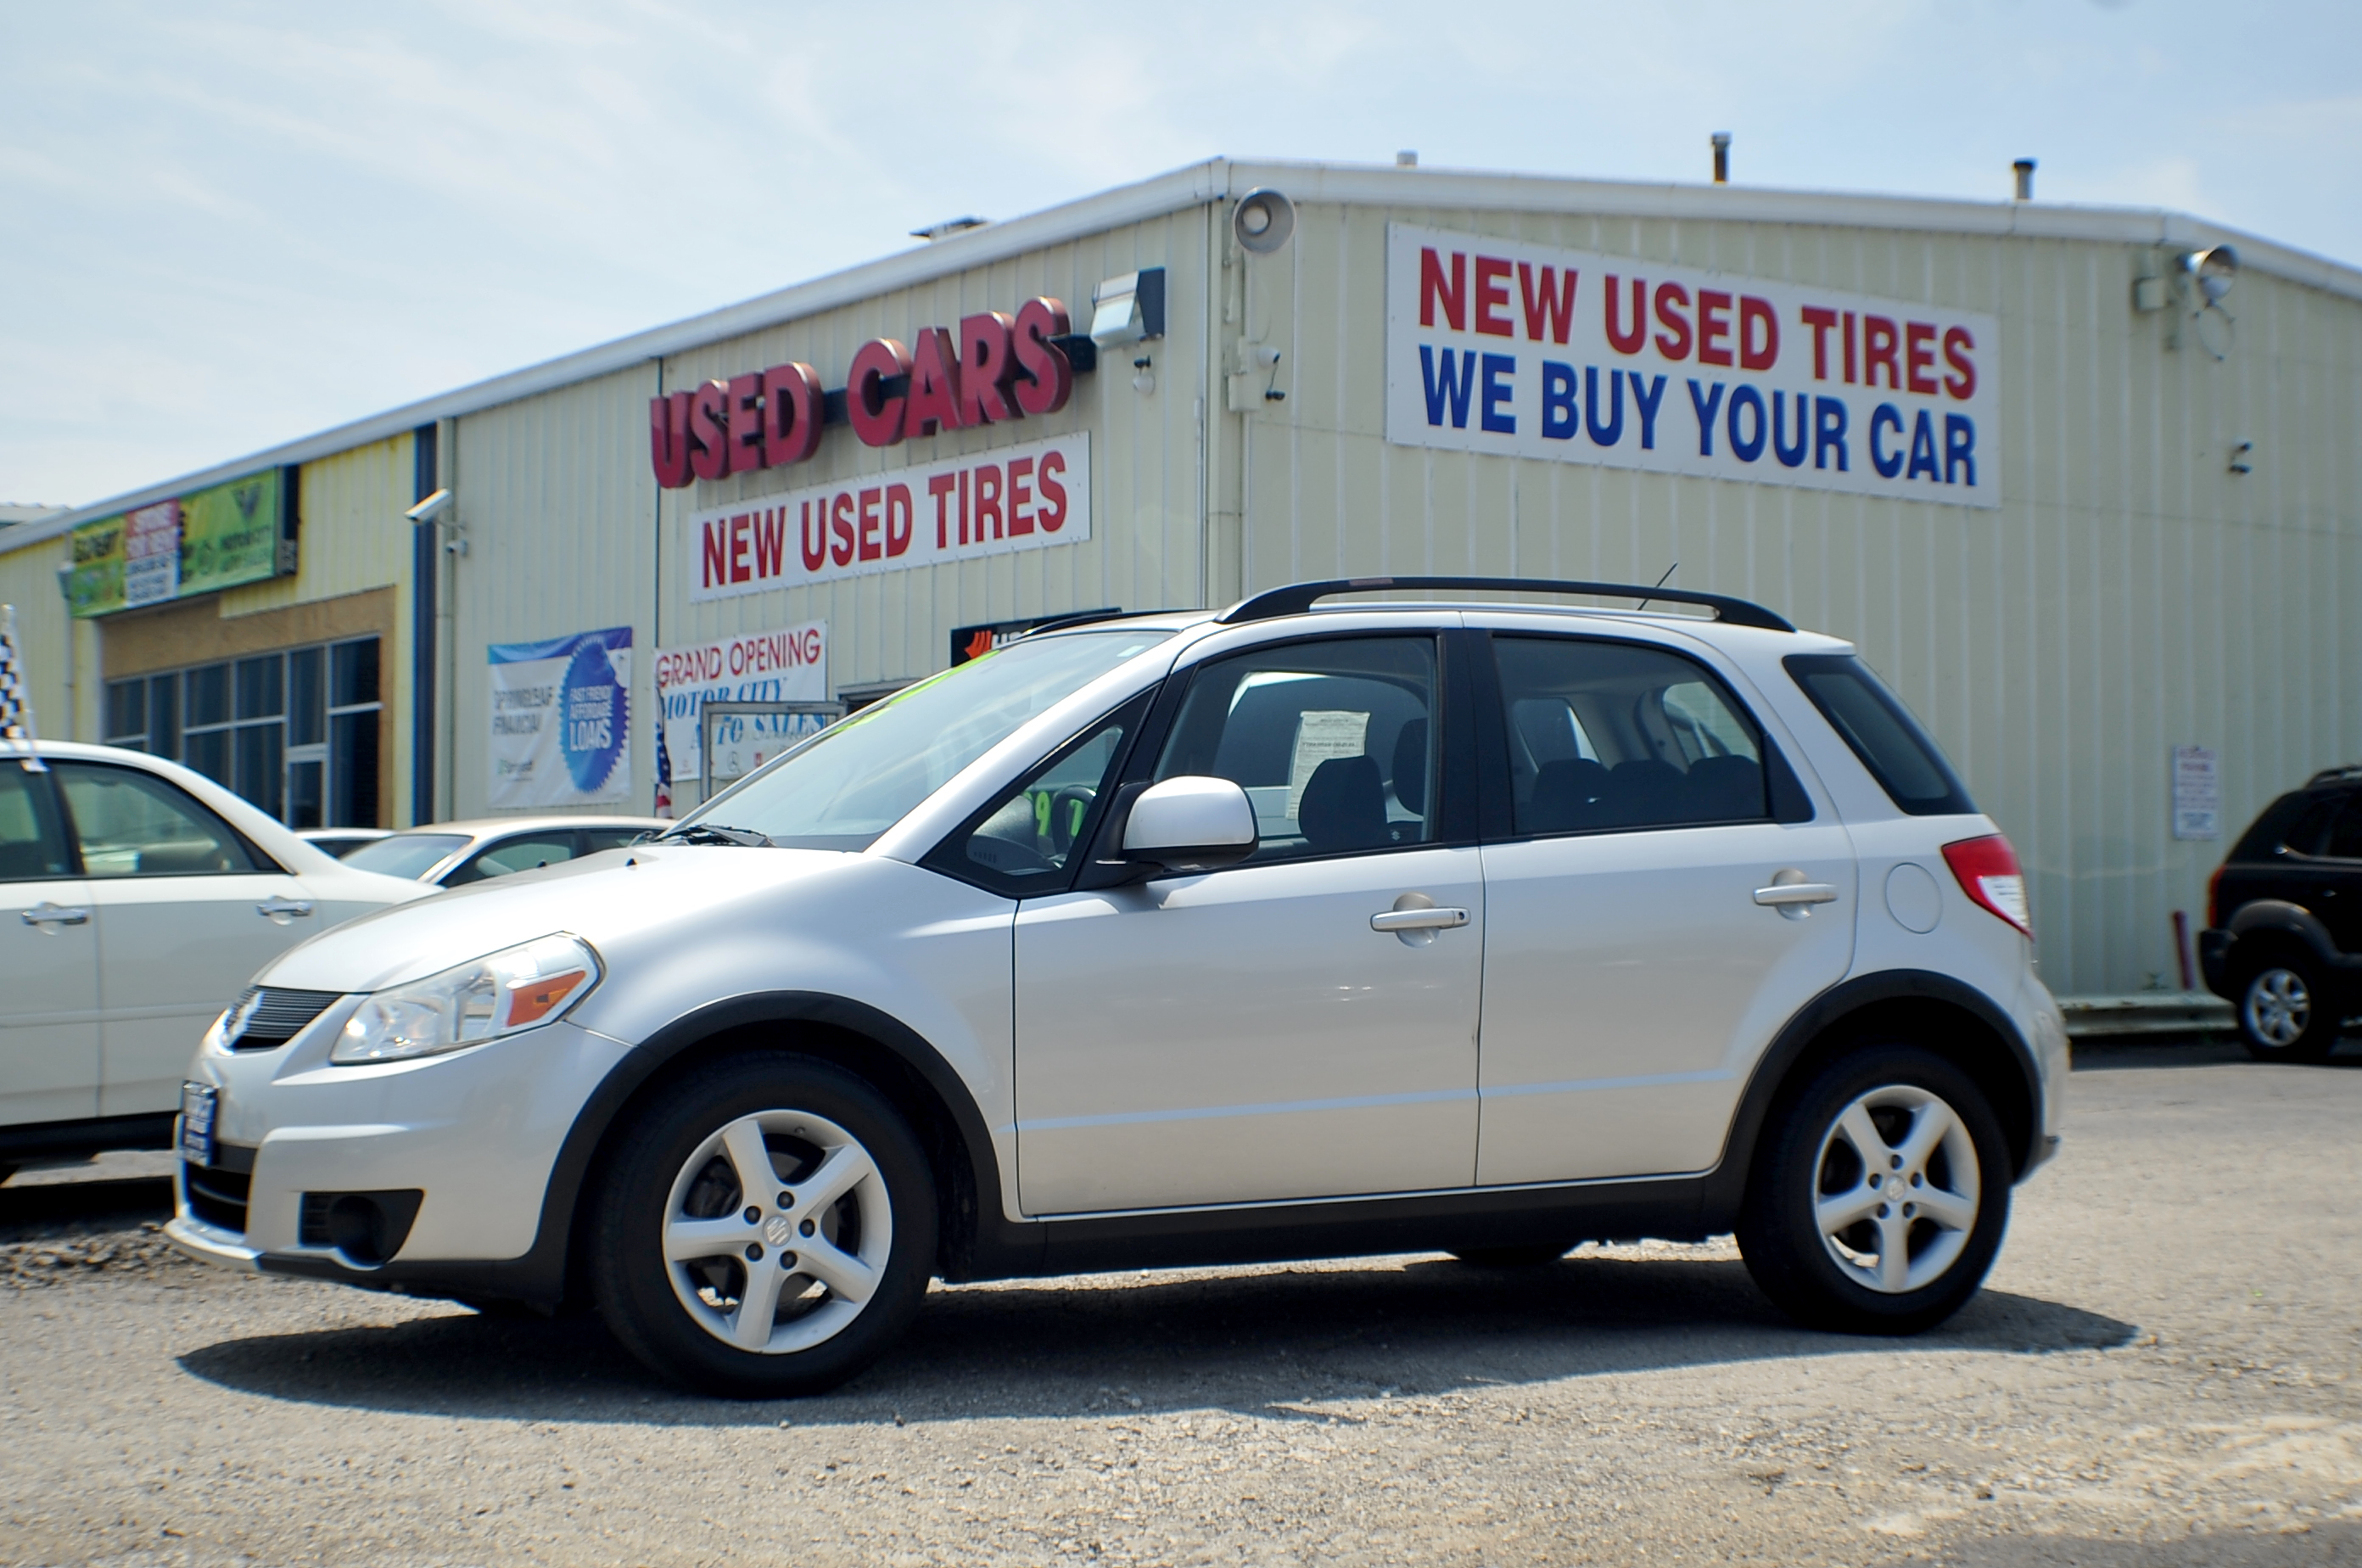 2008 Suzuki SX4 AWD Silver Sport Hatchback Used Car Sale Antioch Grayslake